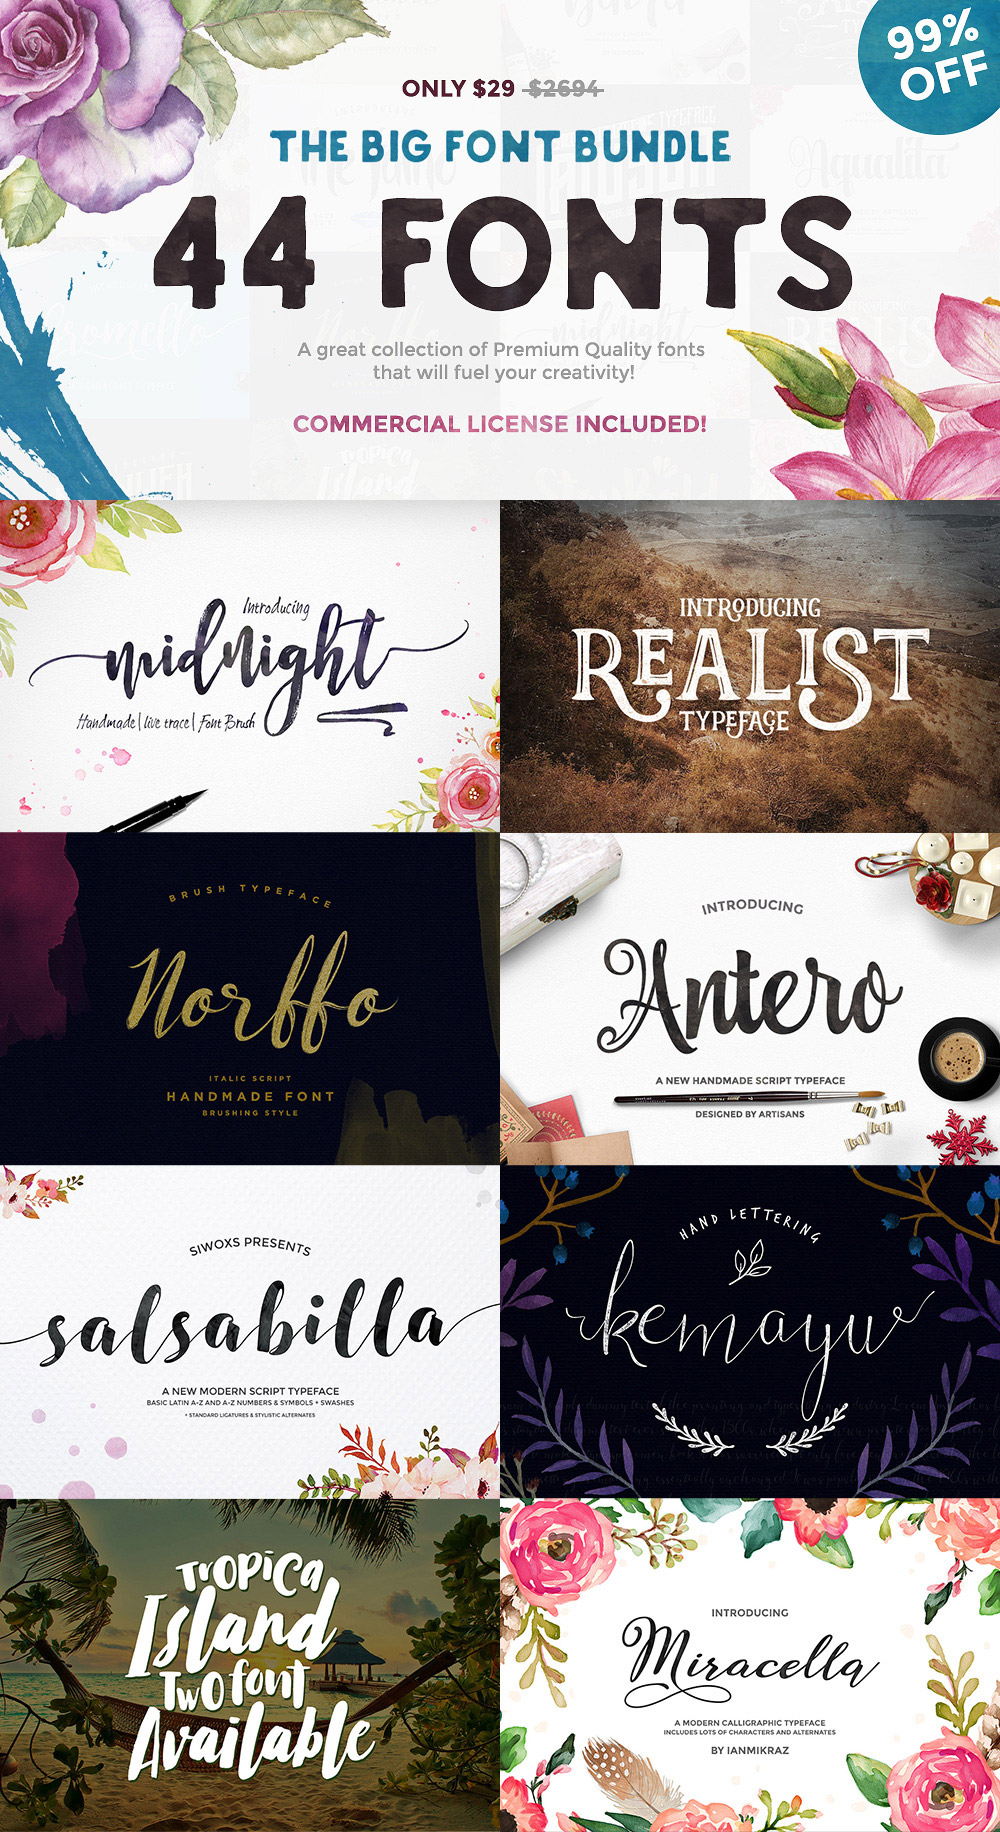 big-font-bundle-february1